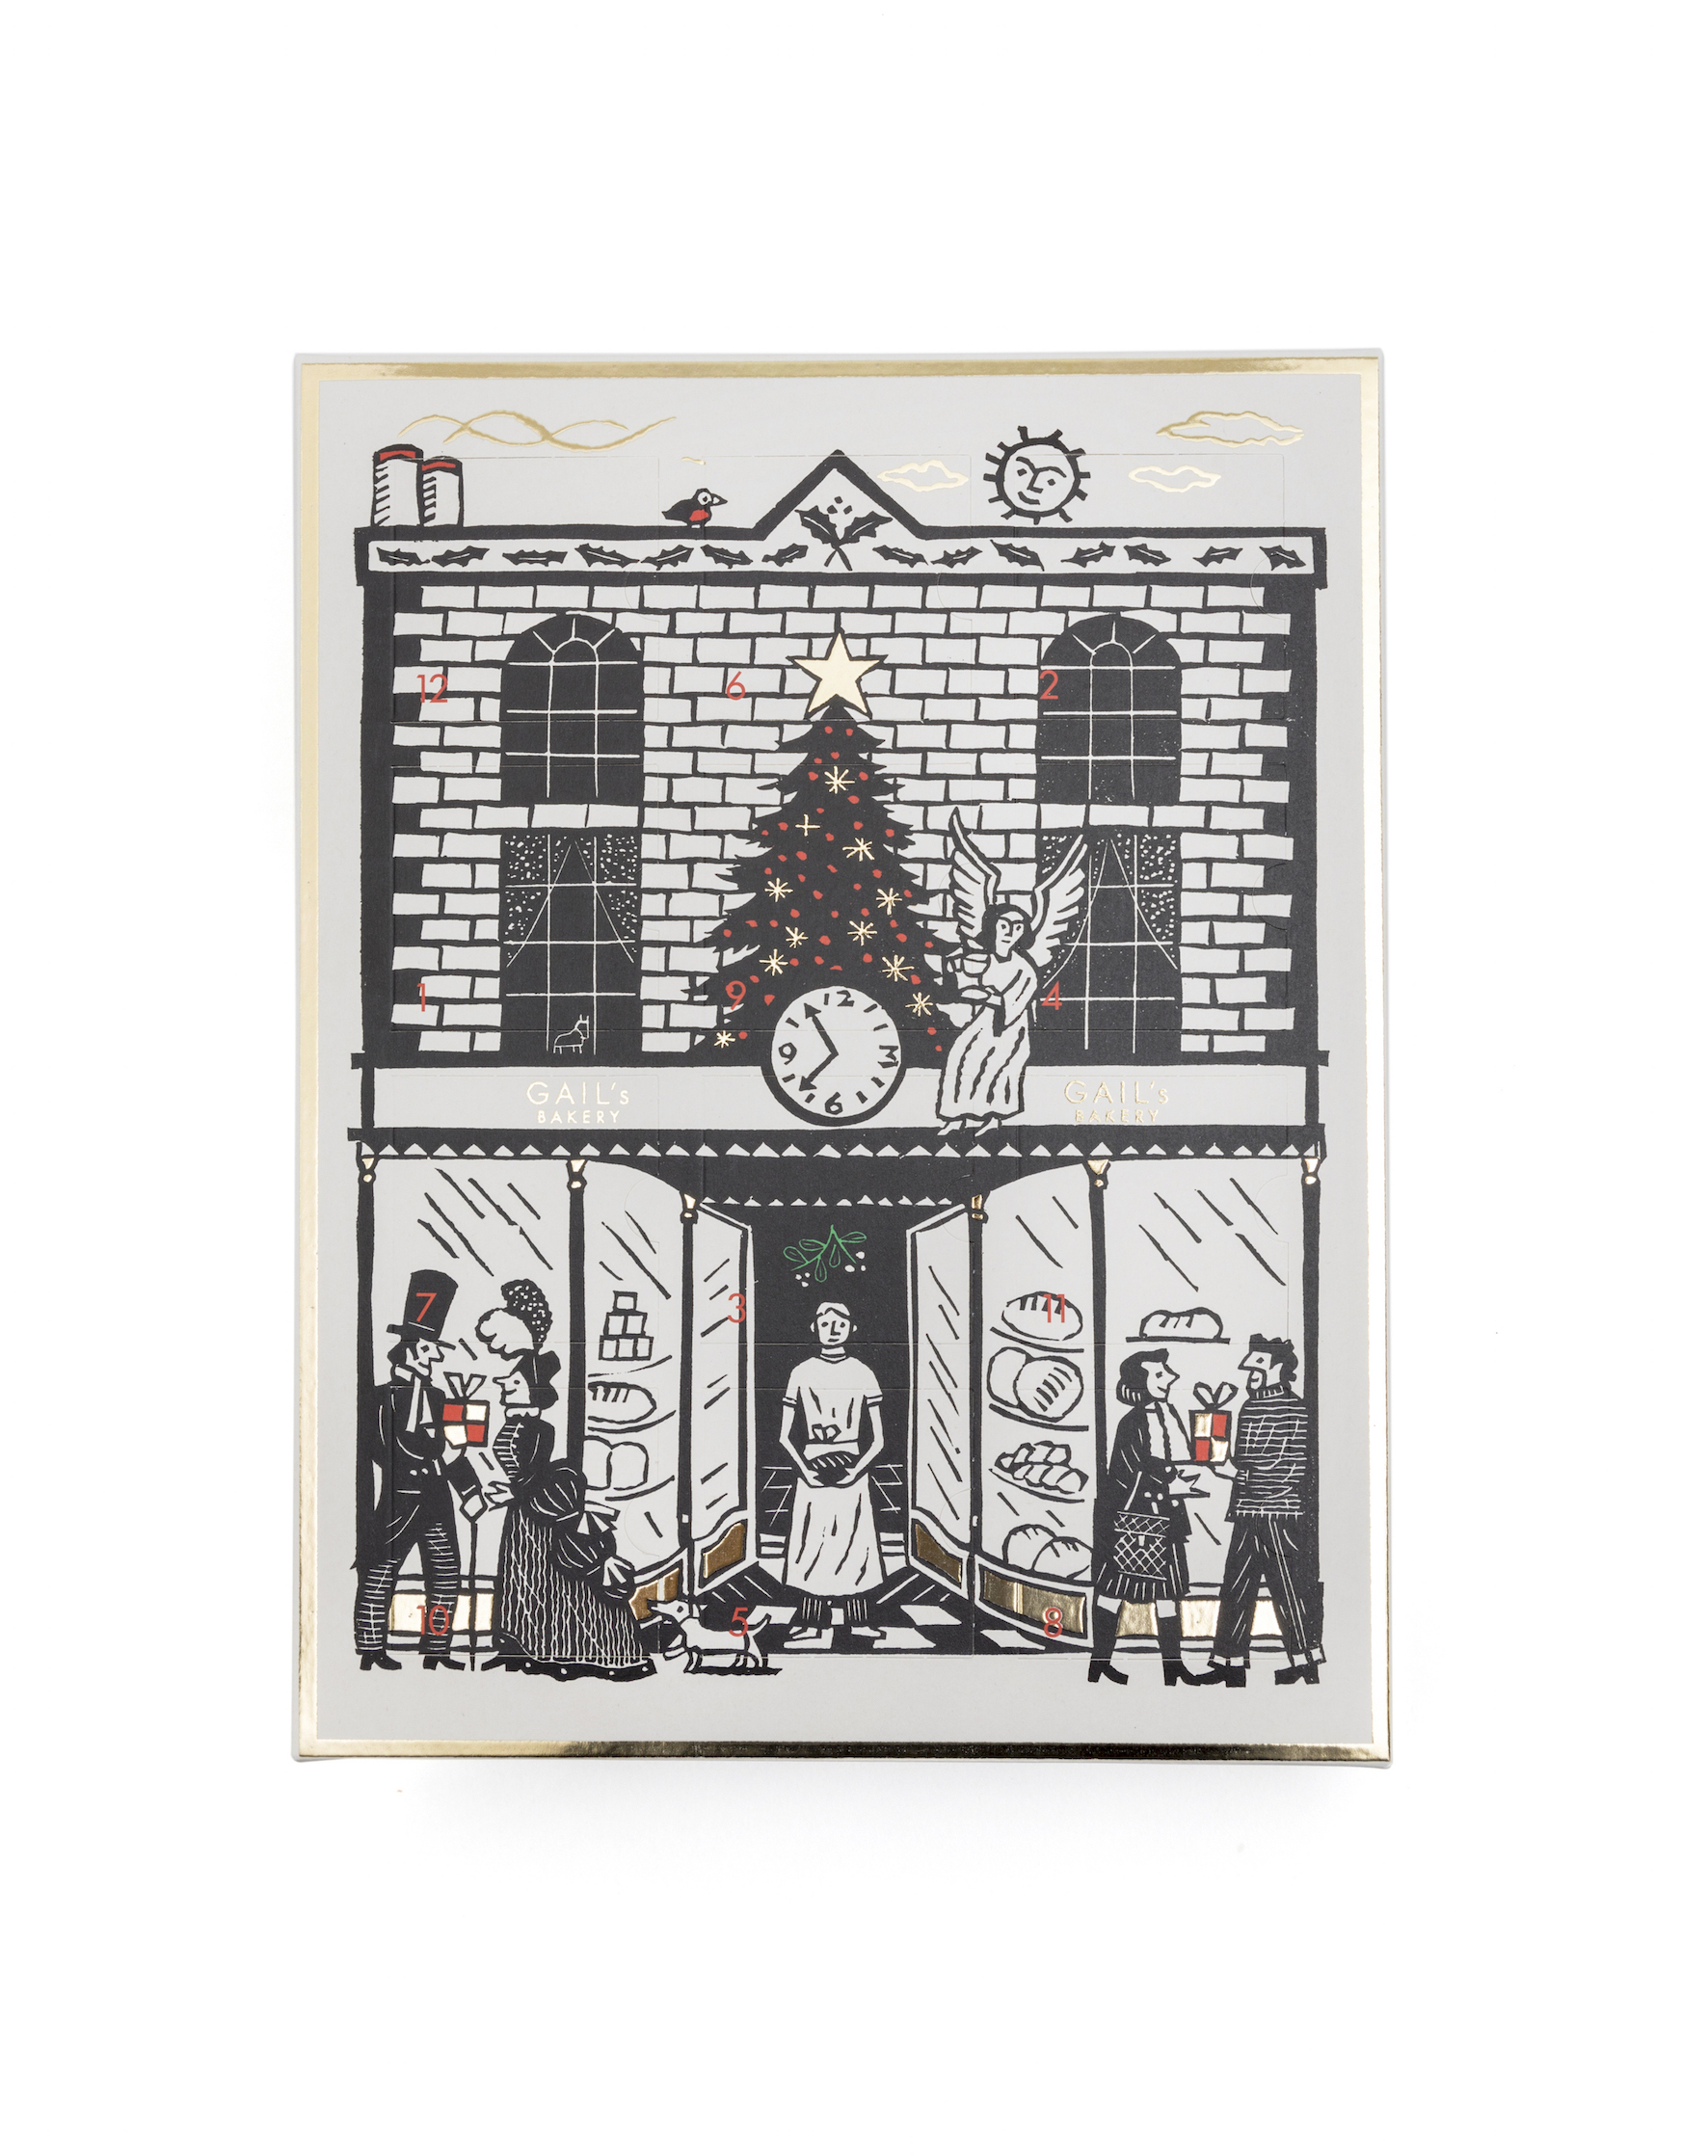 The front of the GAIL's advent calendar. There is a black and white drawing on the front of a GAIL's bakery, with a baker outside. Each door has a red number on it and the calendar has a gold rim